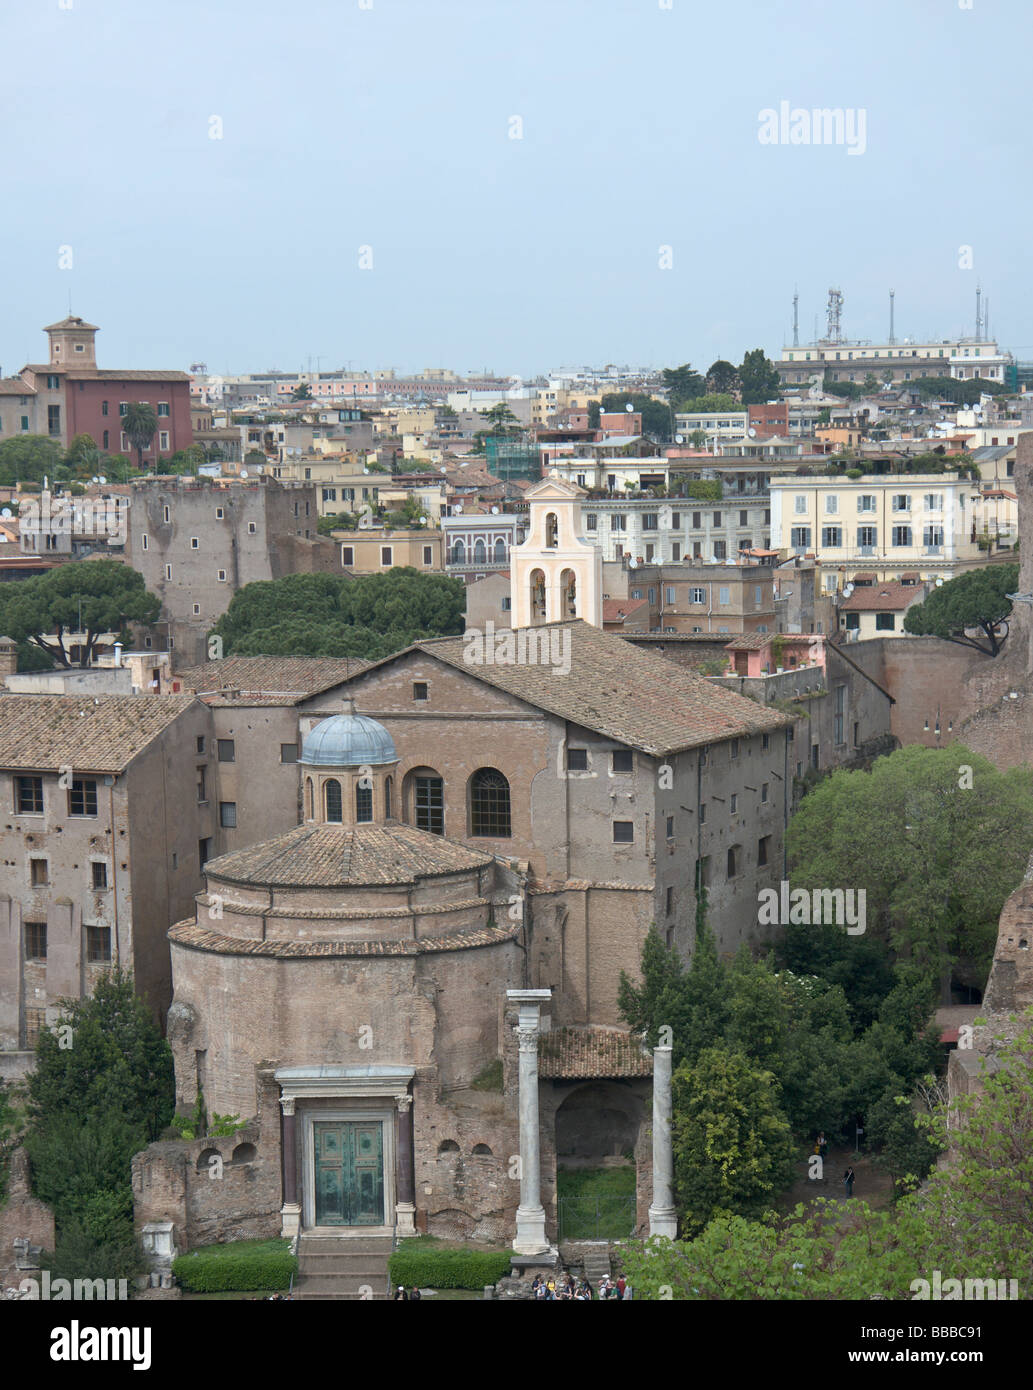 Rome, Italy. Temple Romulus the Divine in the Roman Forum, now part of church Santi Cosma e Damiano. - Stock Image